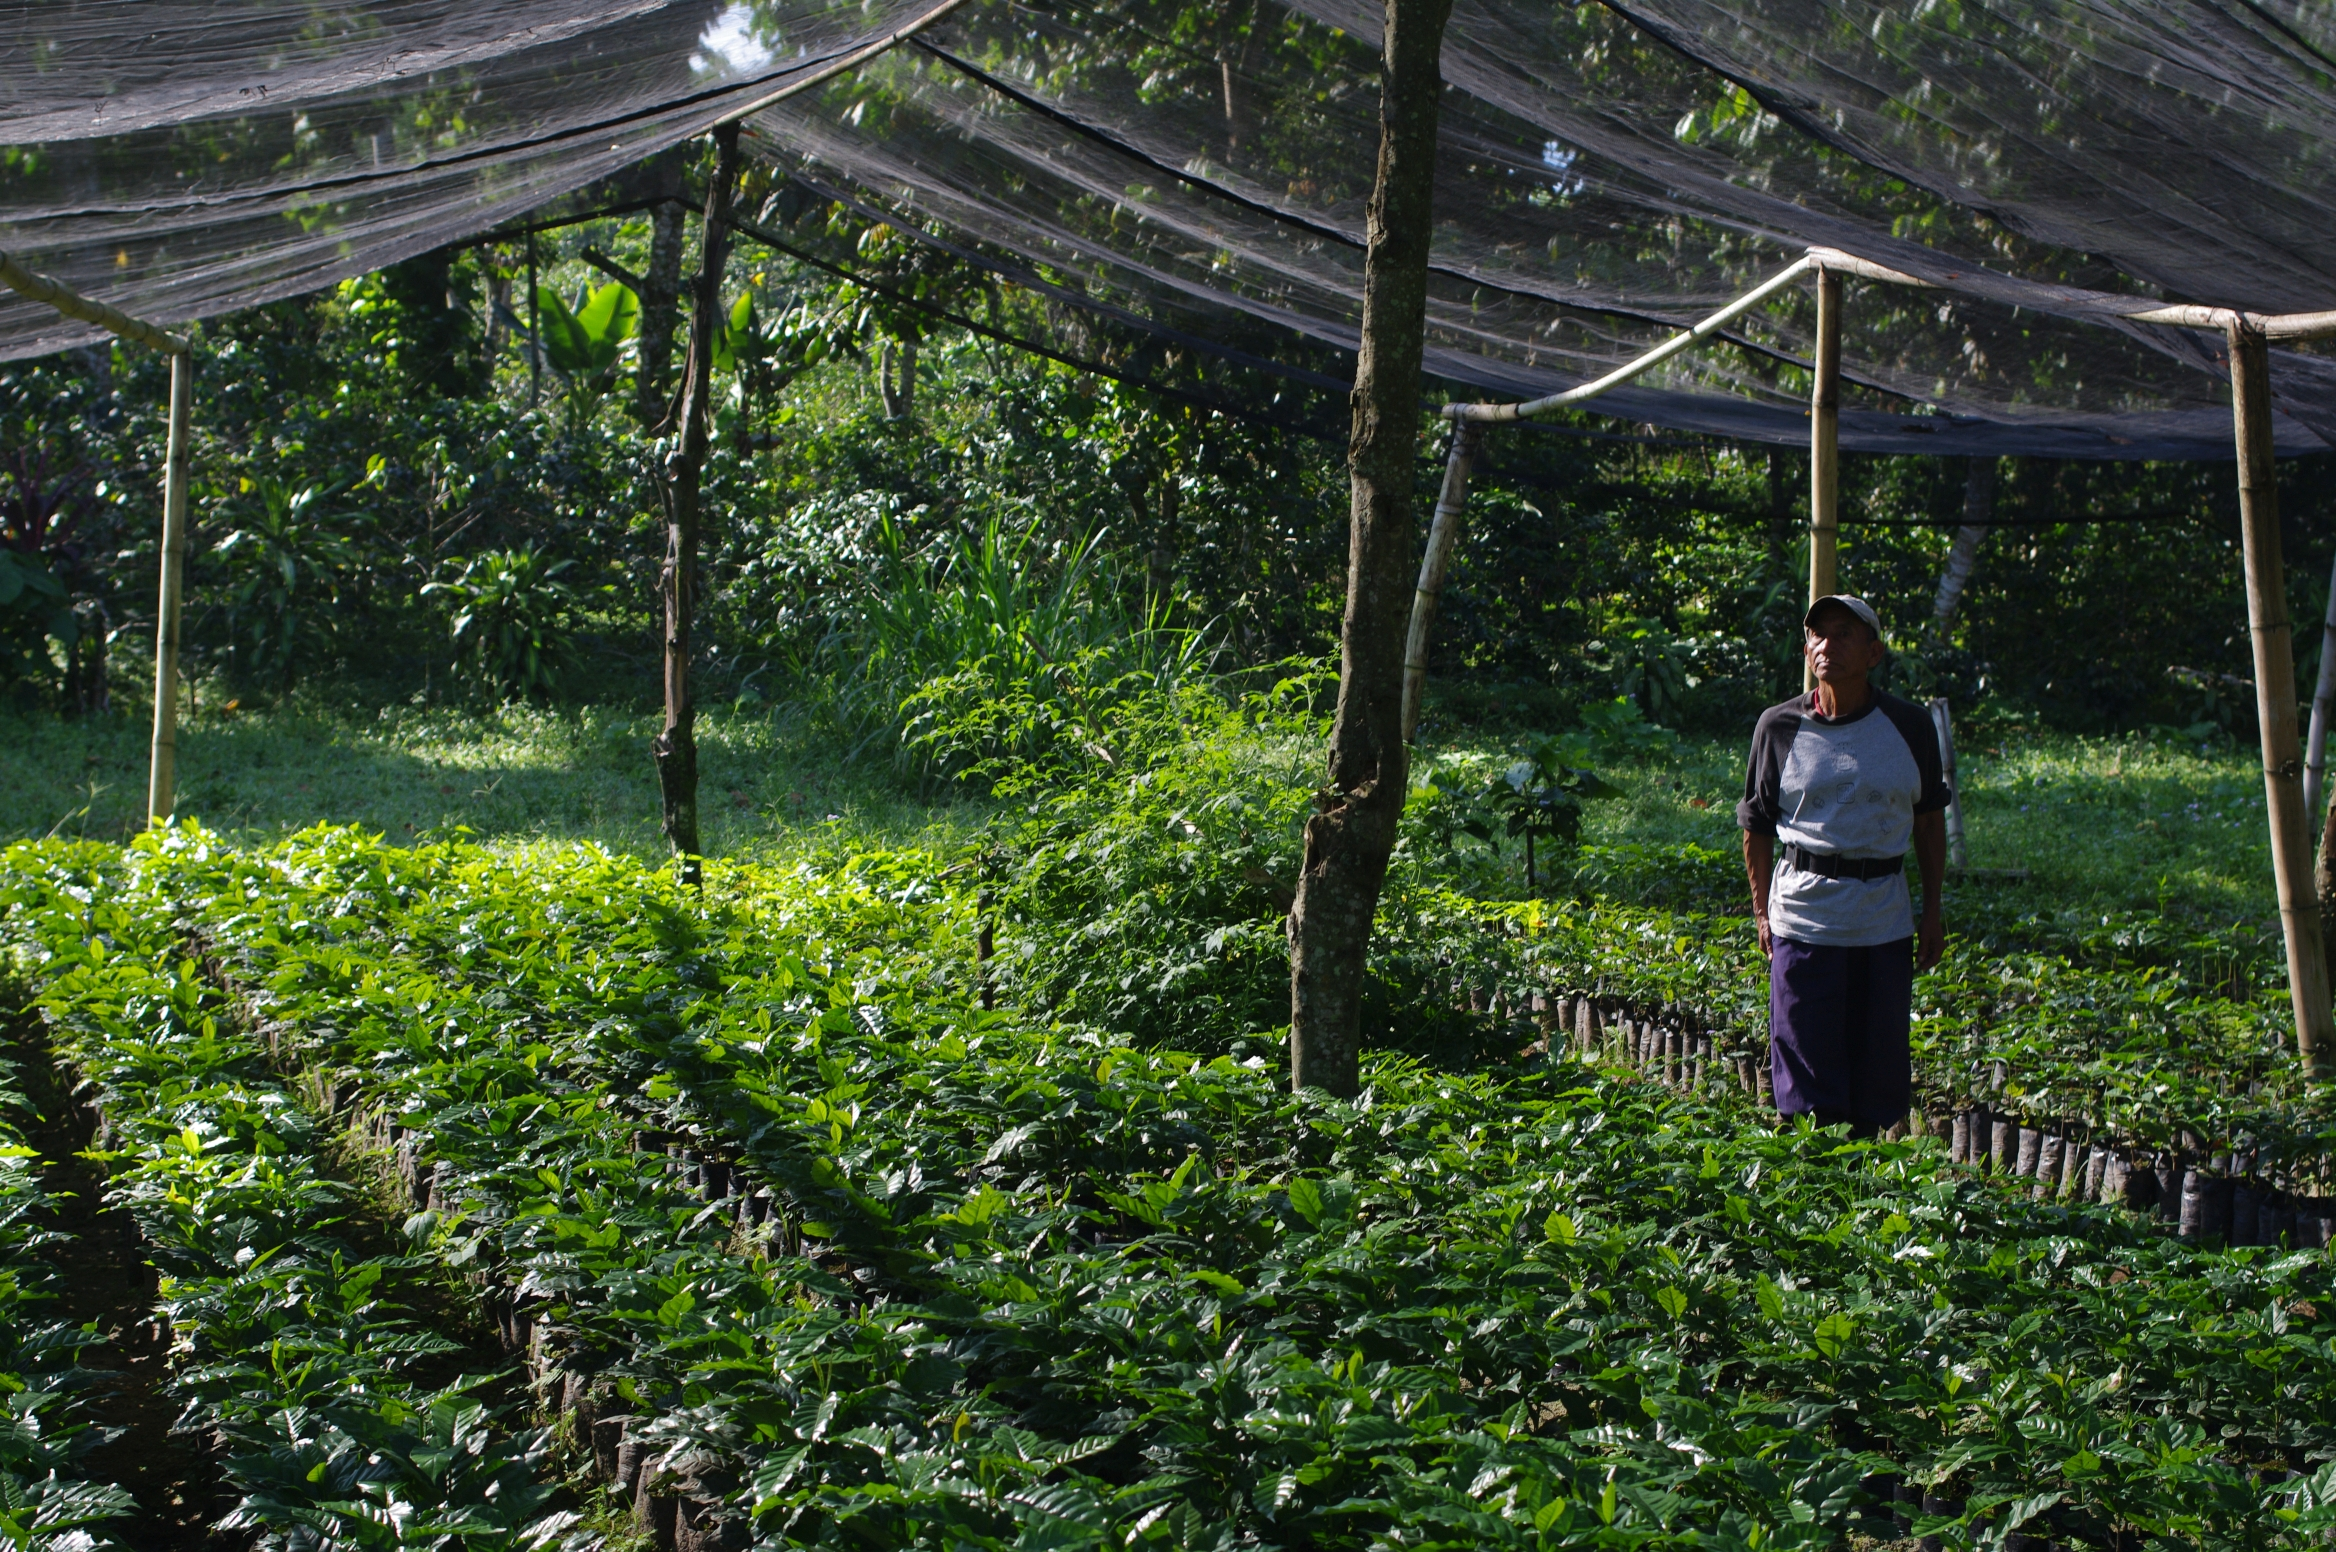 Plant nursery funded by LATA Fundation and De la Gente